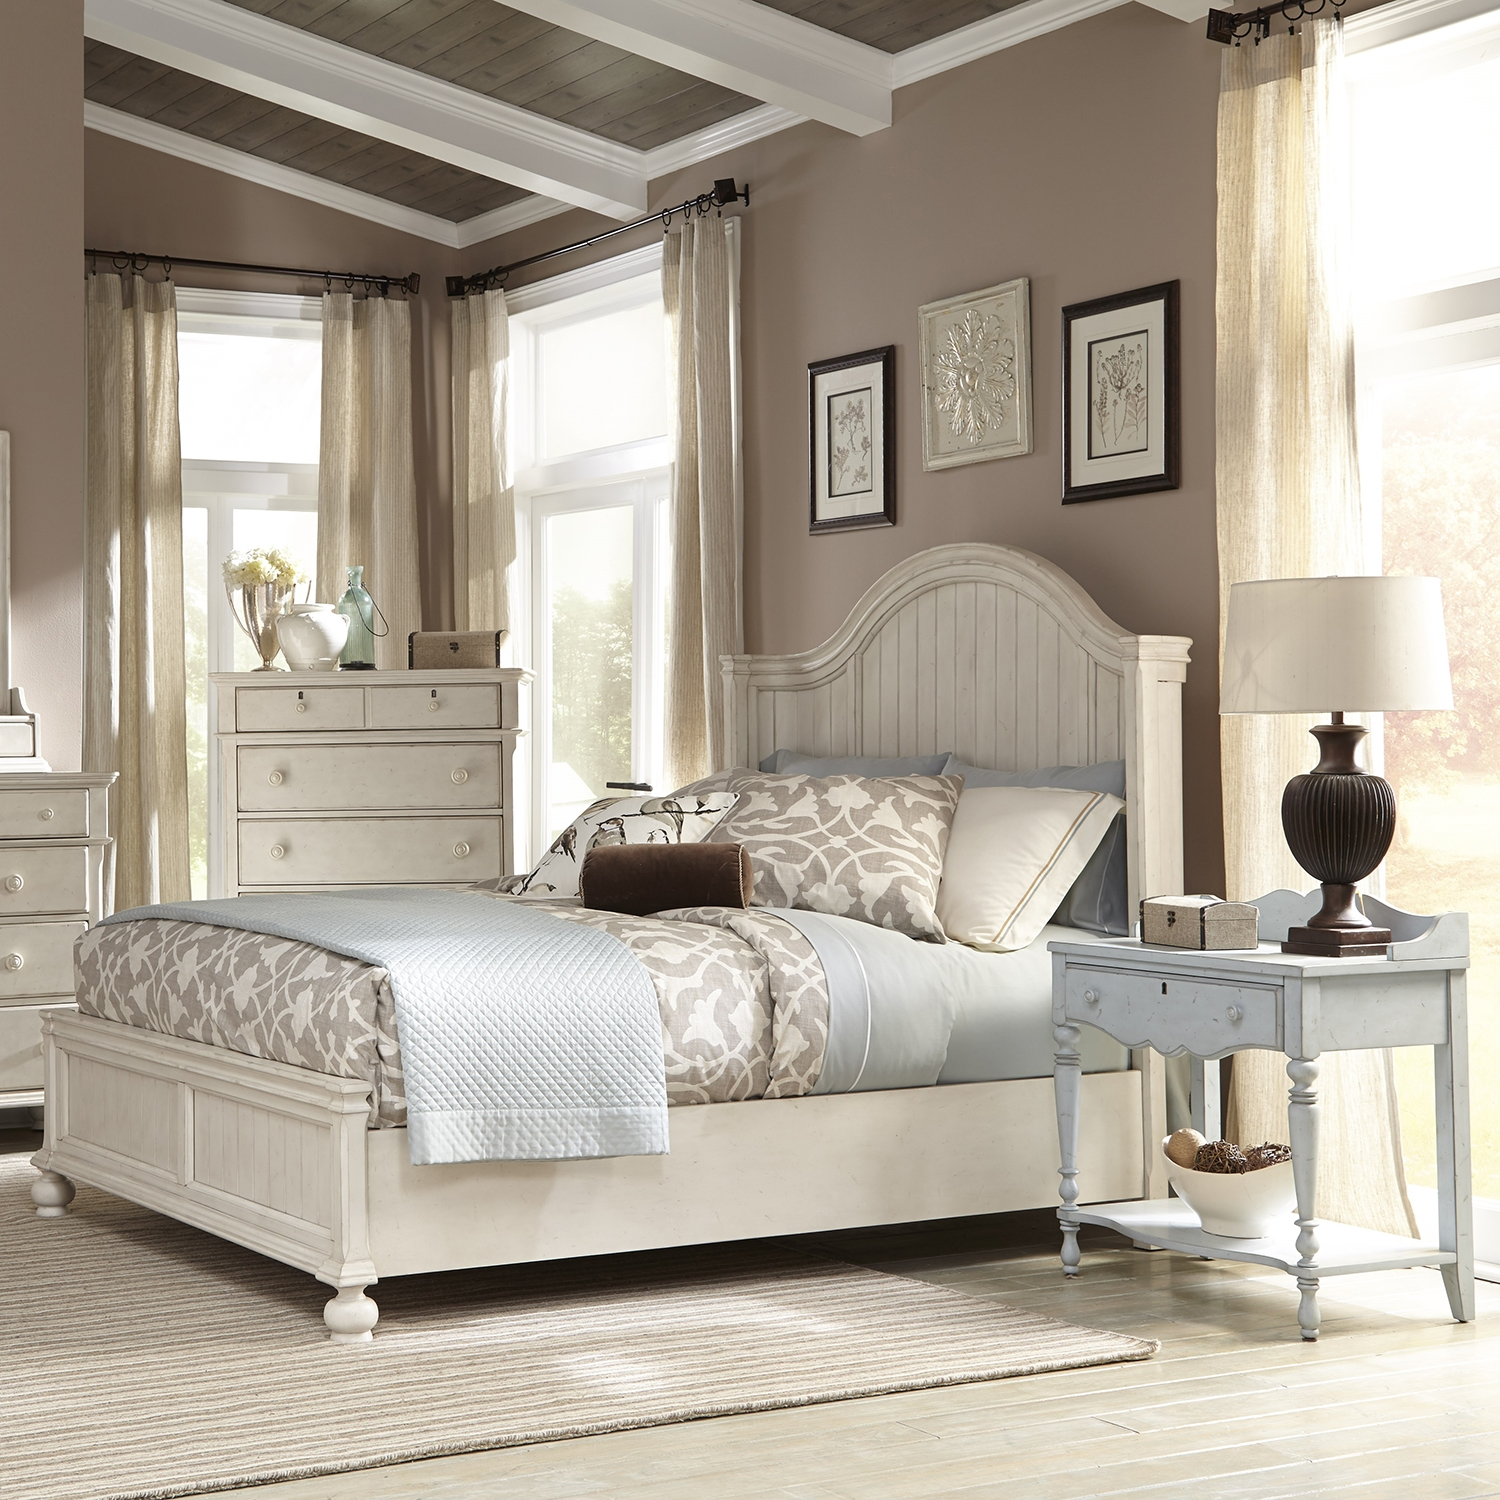 Newport King Panel Bed Bedroom Set In Antique Birch   AW 3710 66PAN  ...